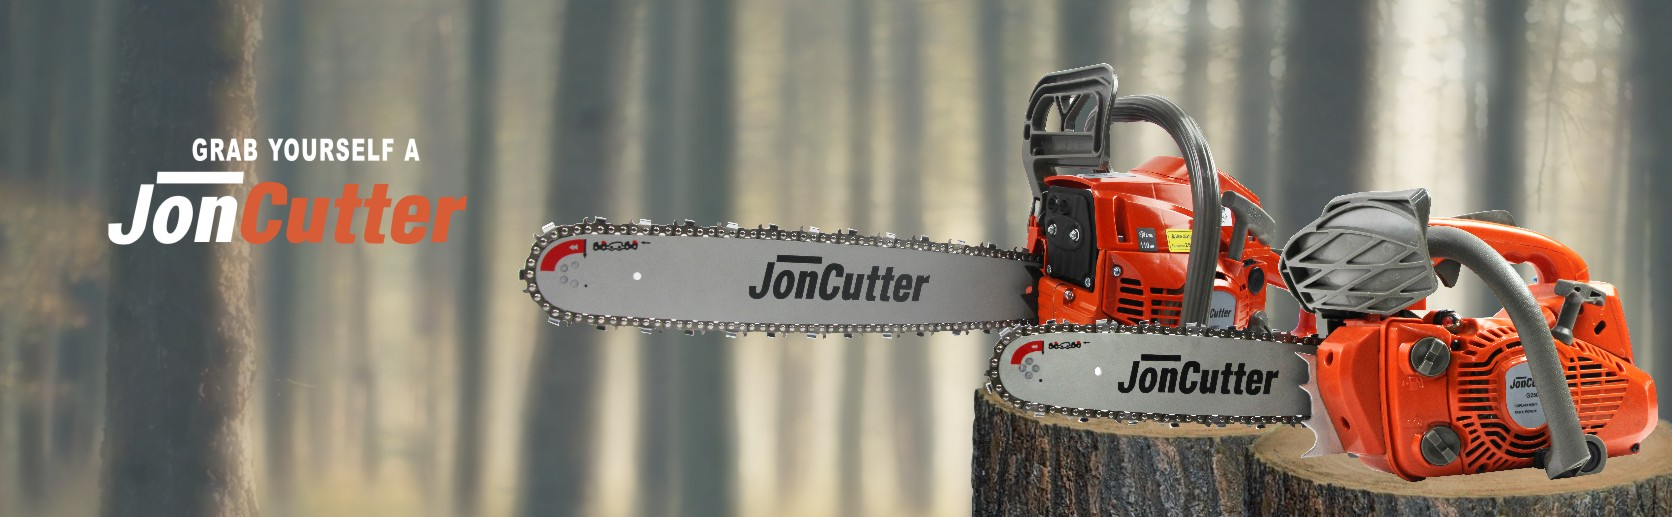 Holzfforma Chainsaw | Stihl Chainsaw Parts | Holzfforma Farmertec